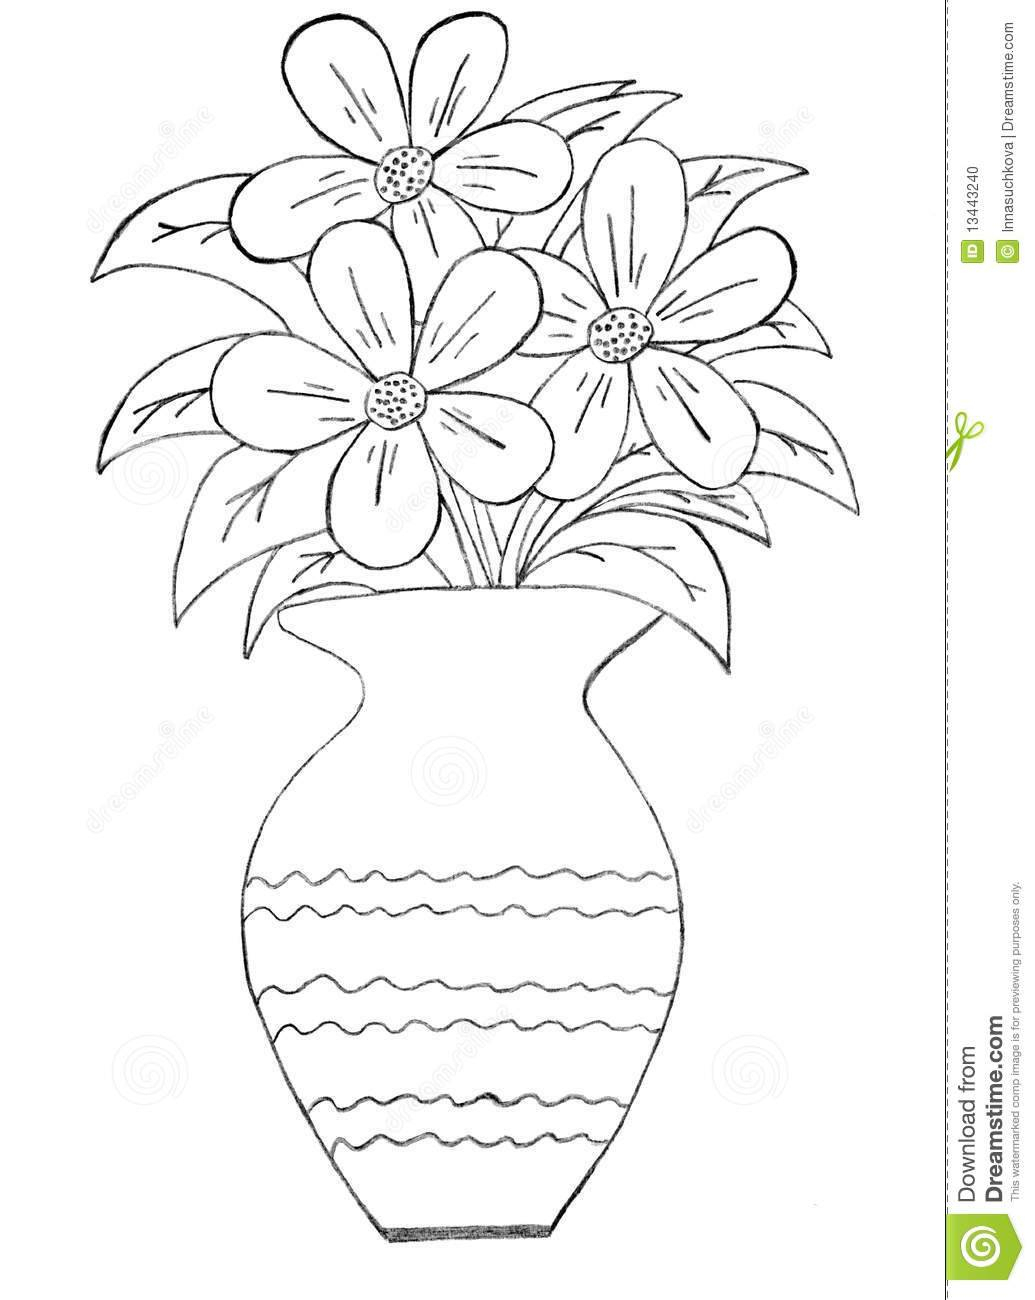 1035x1300 Pencil Drawing Of Flowers In Flower Pot